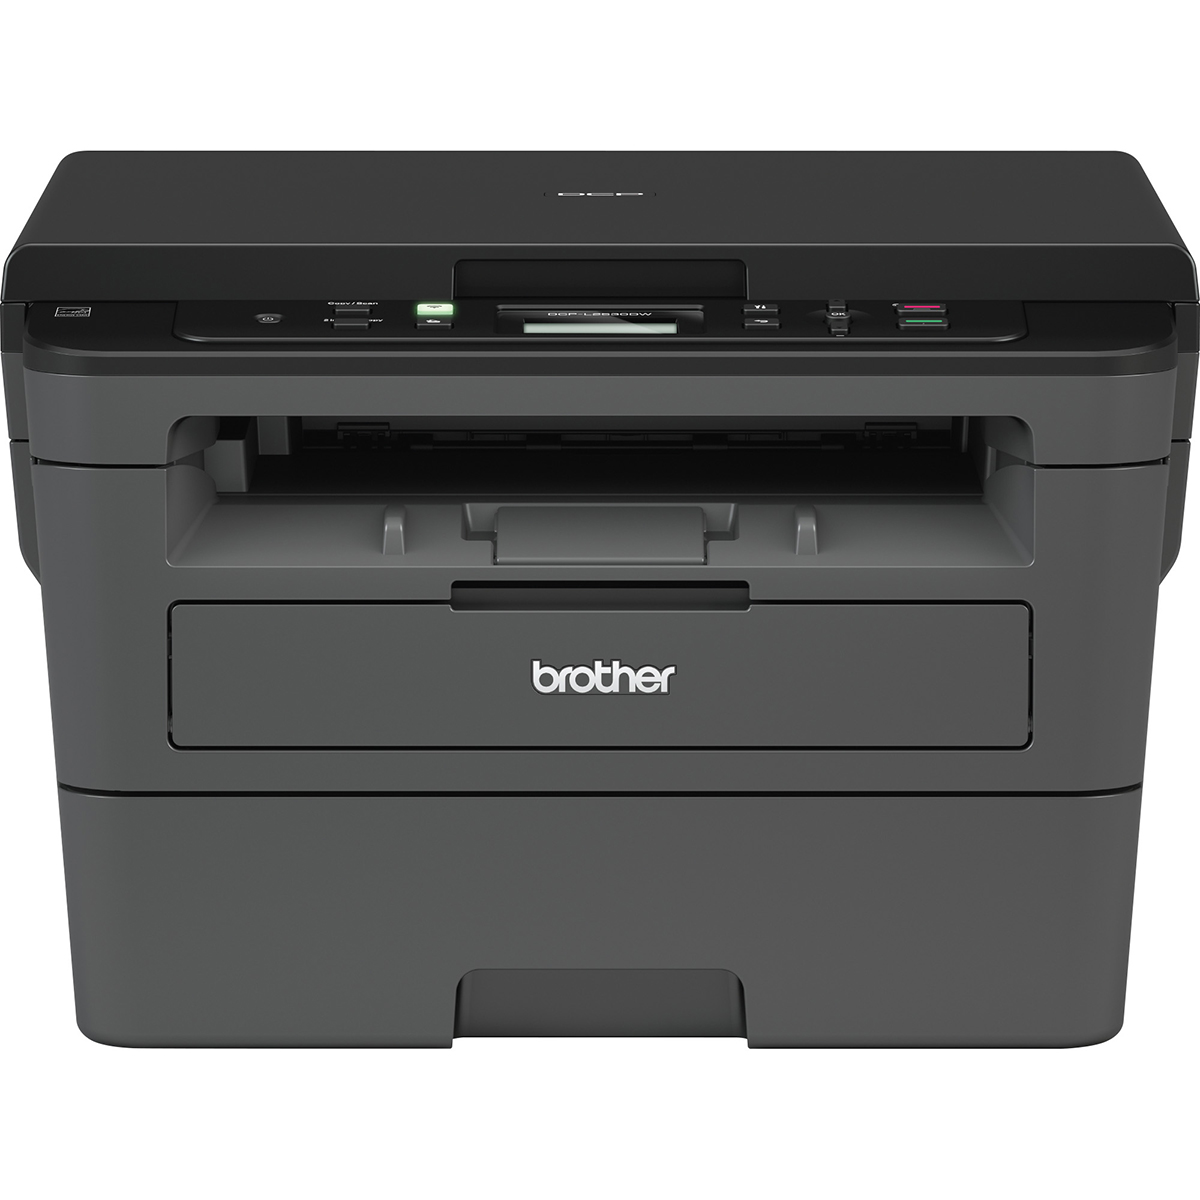 Brother DCP-L2530DW A Grade - Refurbished Machine